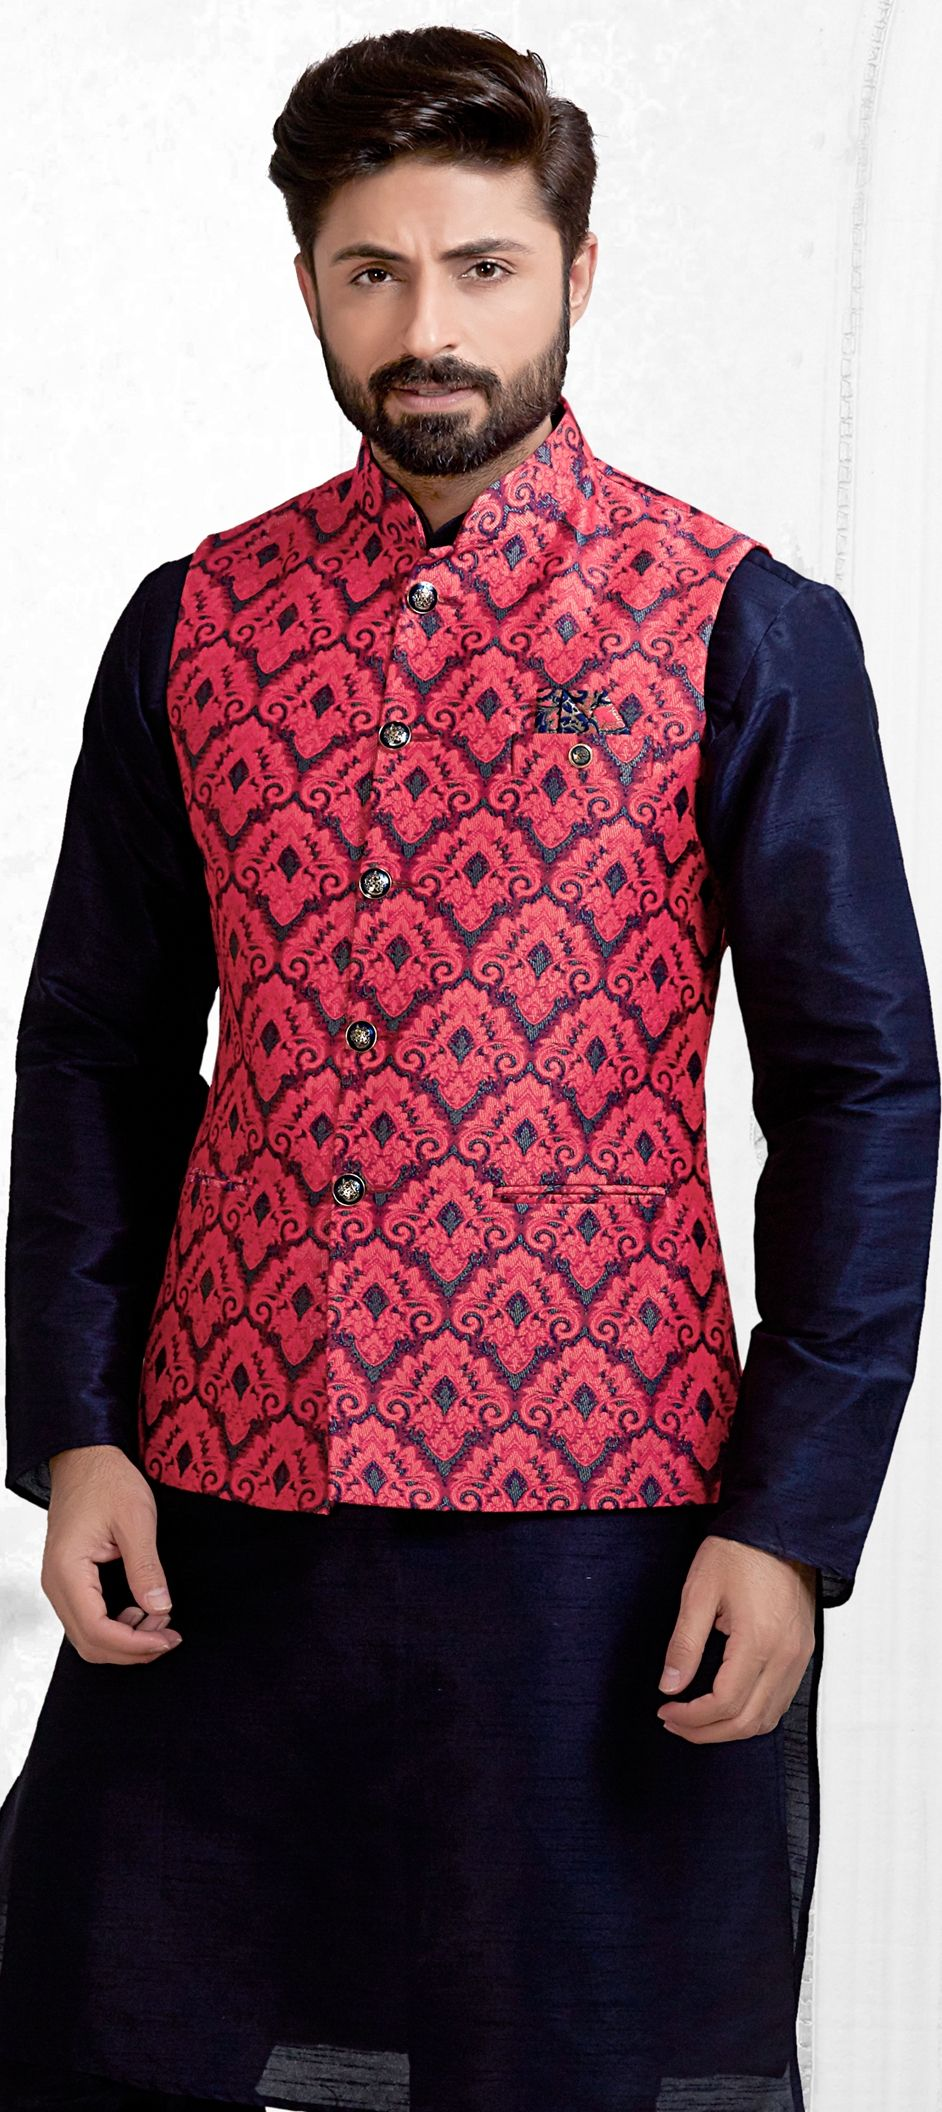 b514f0707 Brocade Nehru Jacket in Red and Maroon with Thread work